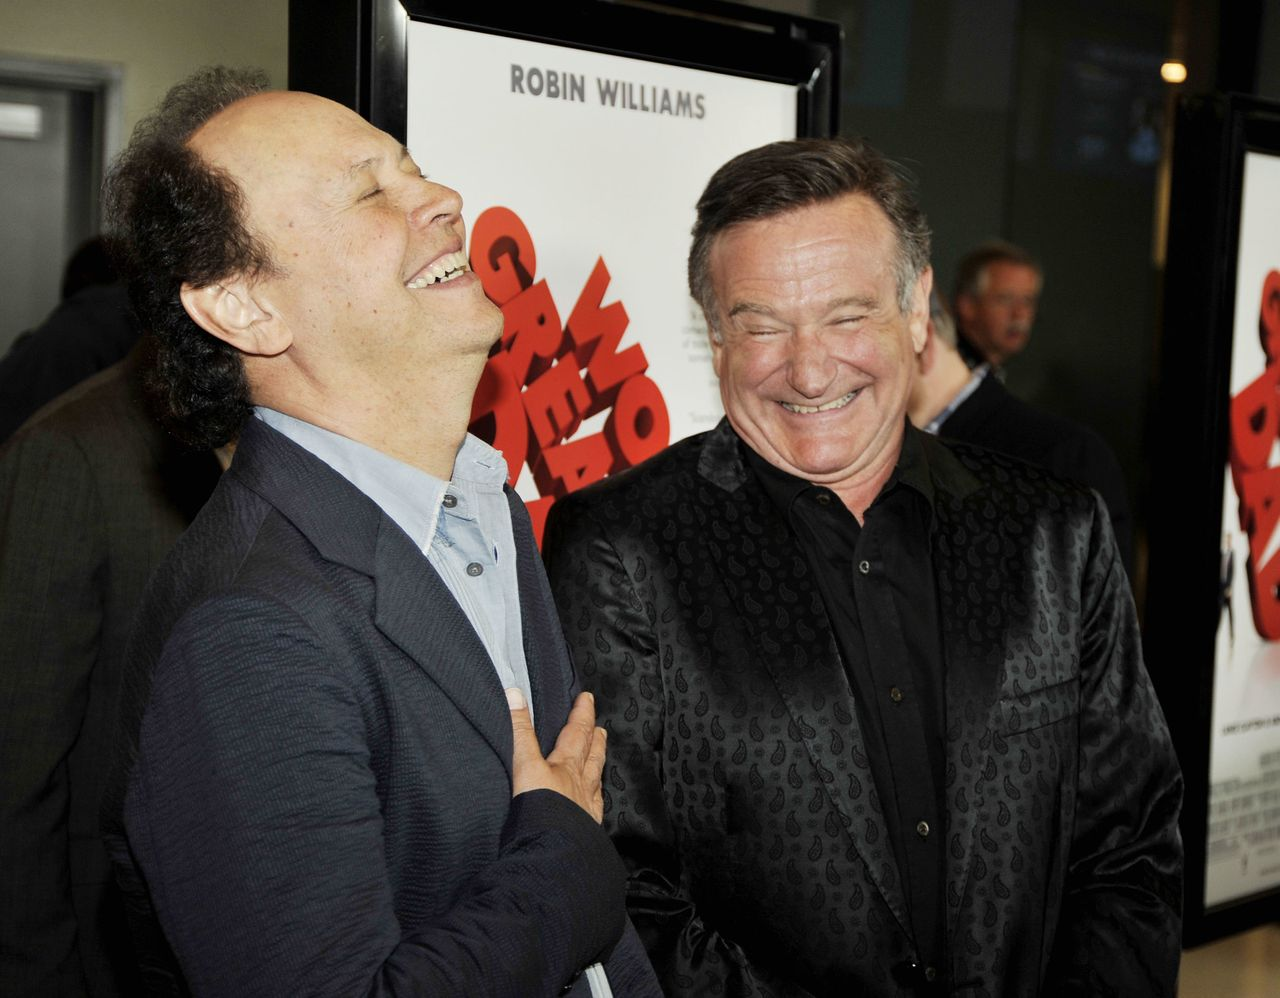 """Actors Billy Crystal (left) and Robin Williams at the premiere of Magnolia Pictures' """"World's Greatest Dad"""" on Aug. 13, 2009, in Los Angeles."""